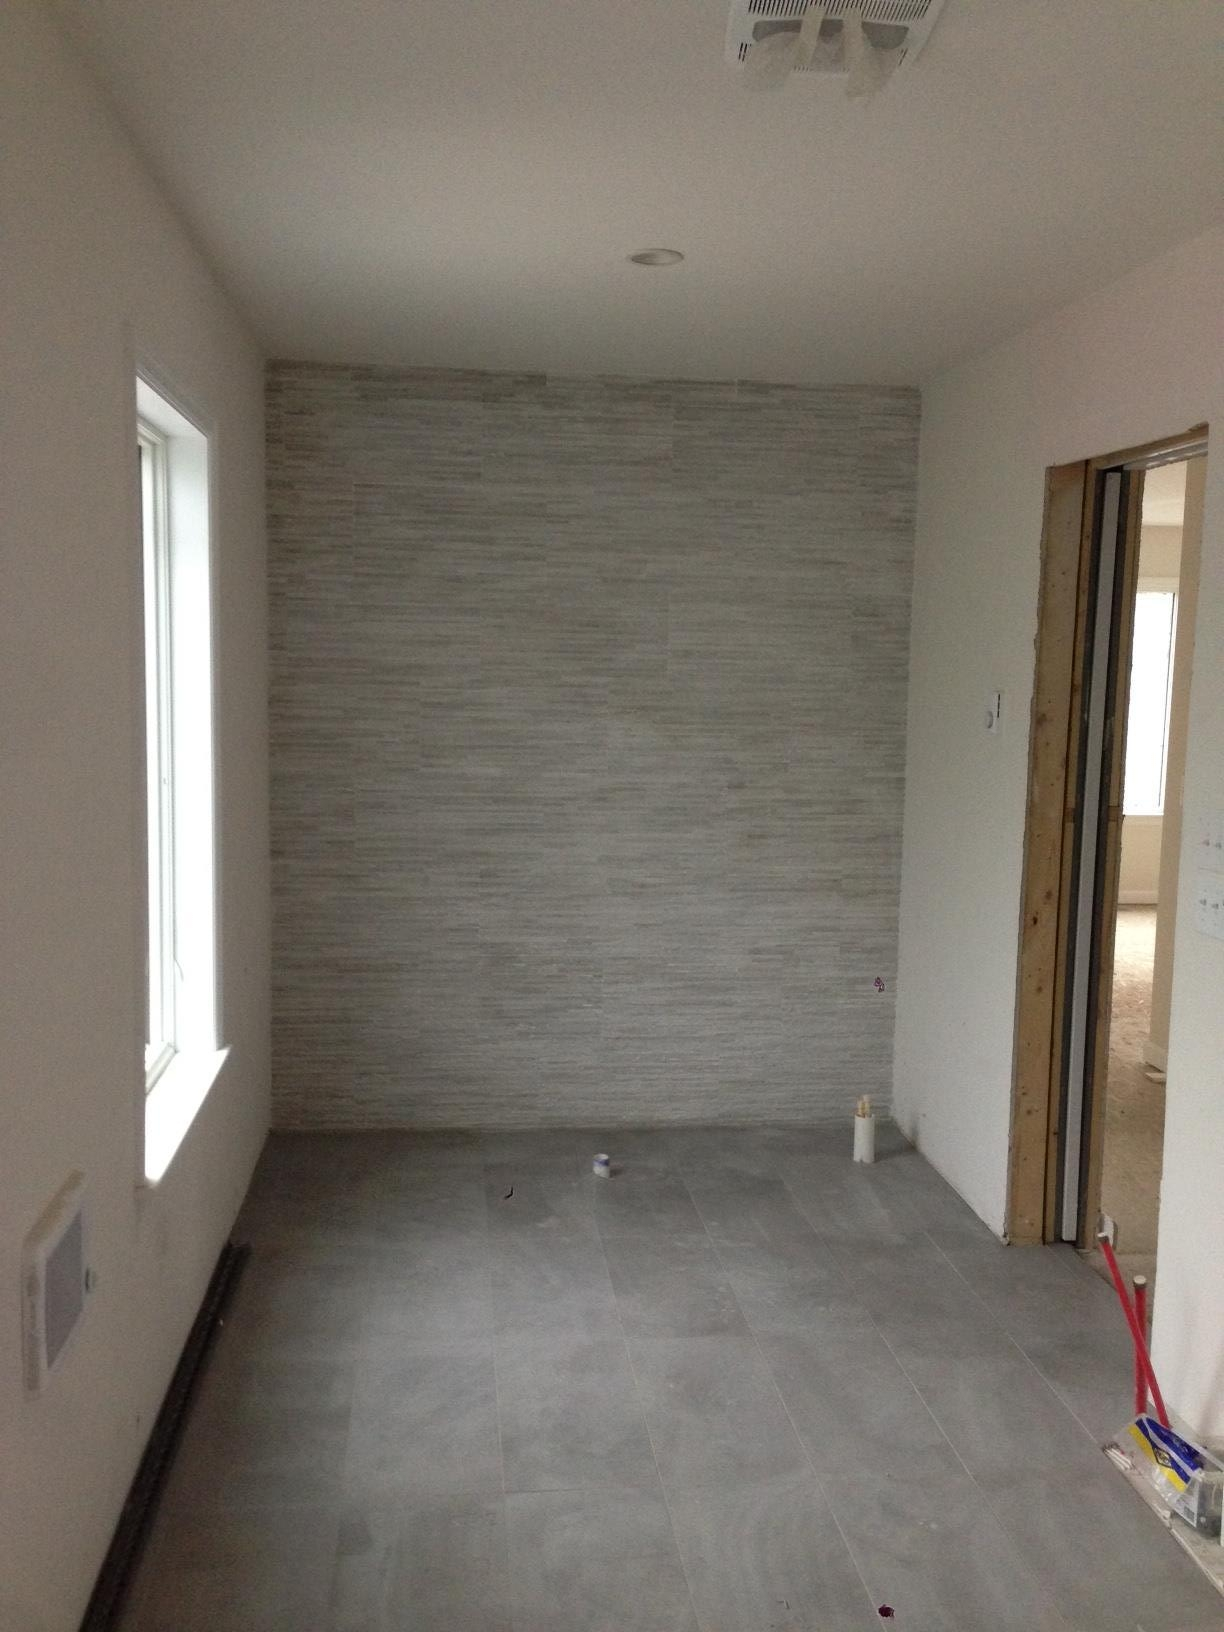 Soon a stand alone tub will be located in front of our beautiful tiled wall. Soon.